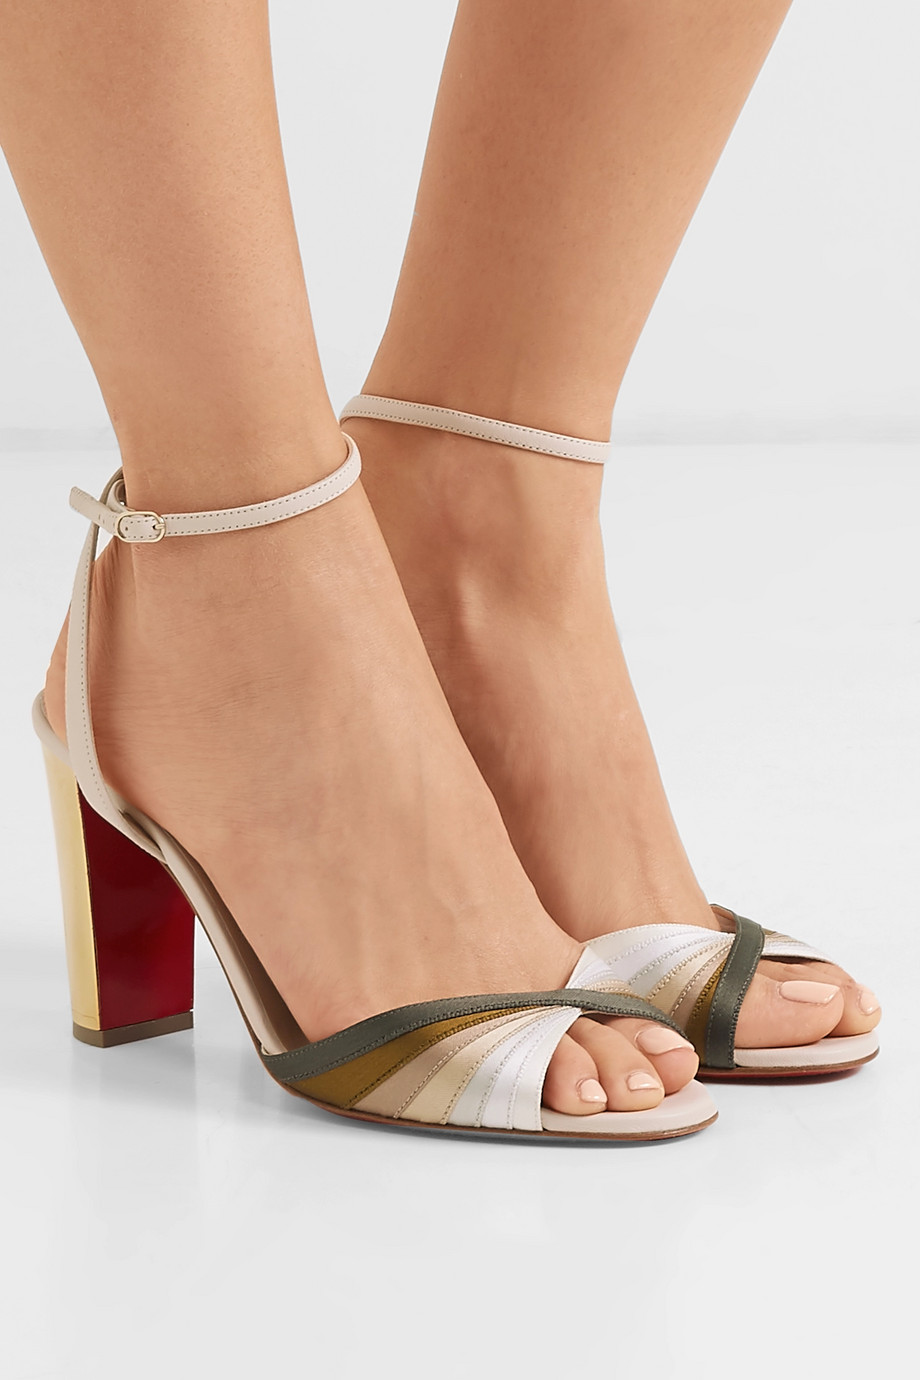 Christian Louboutin Naseebasse 85 satin and leather sandals